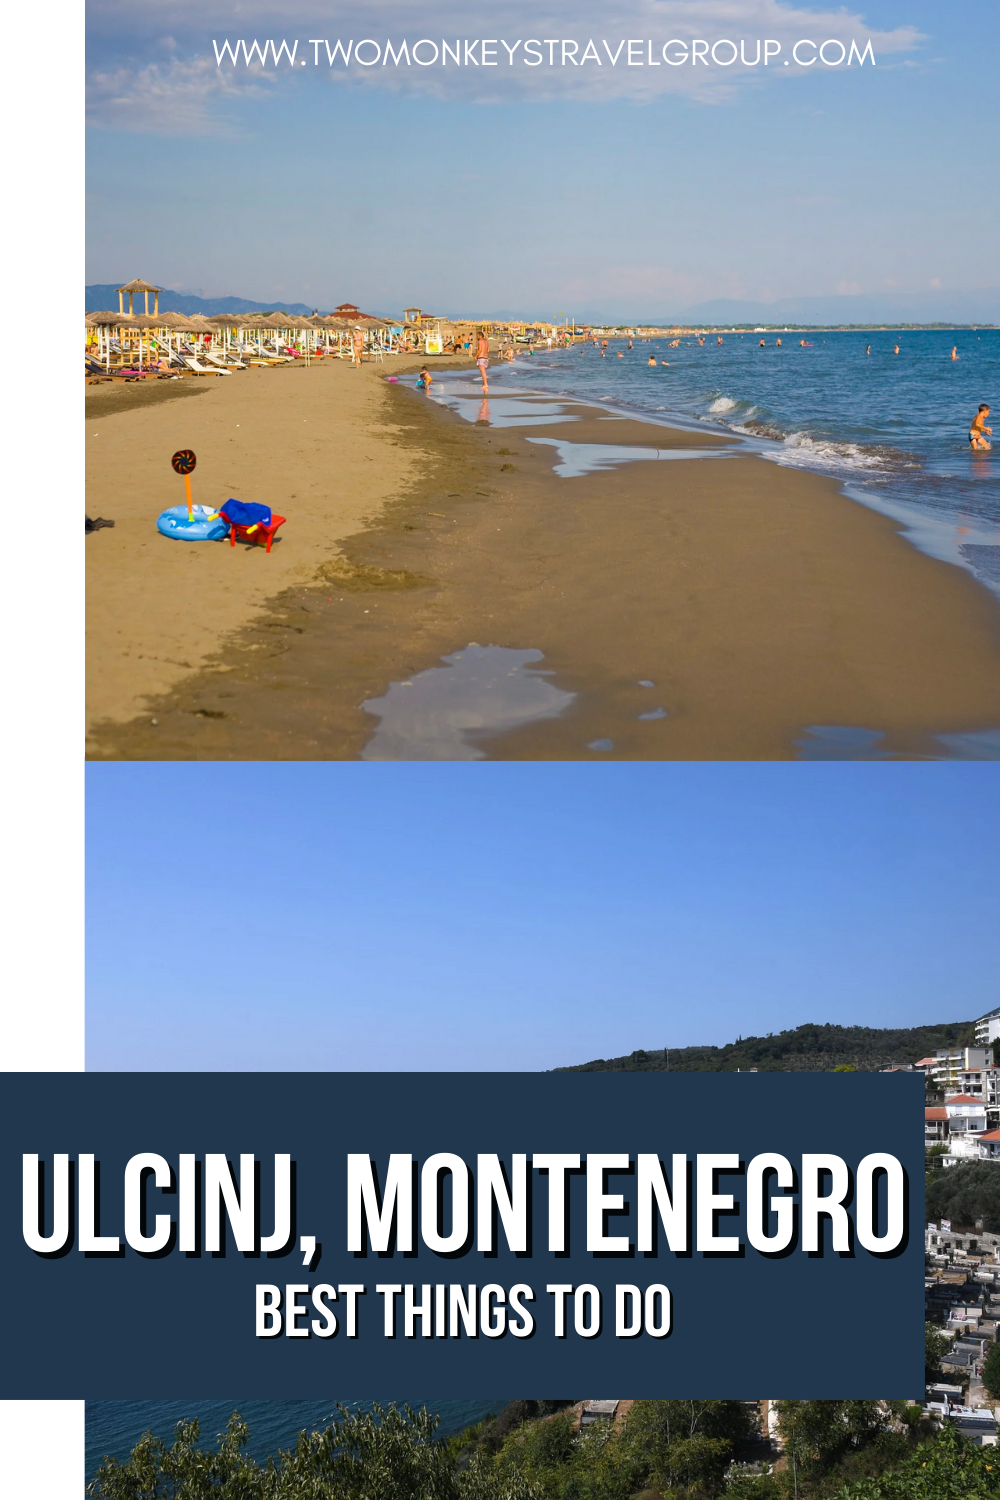 10 Best Things To Do in Ulcinj, Montenegro [with Photos]